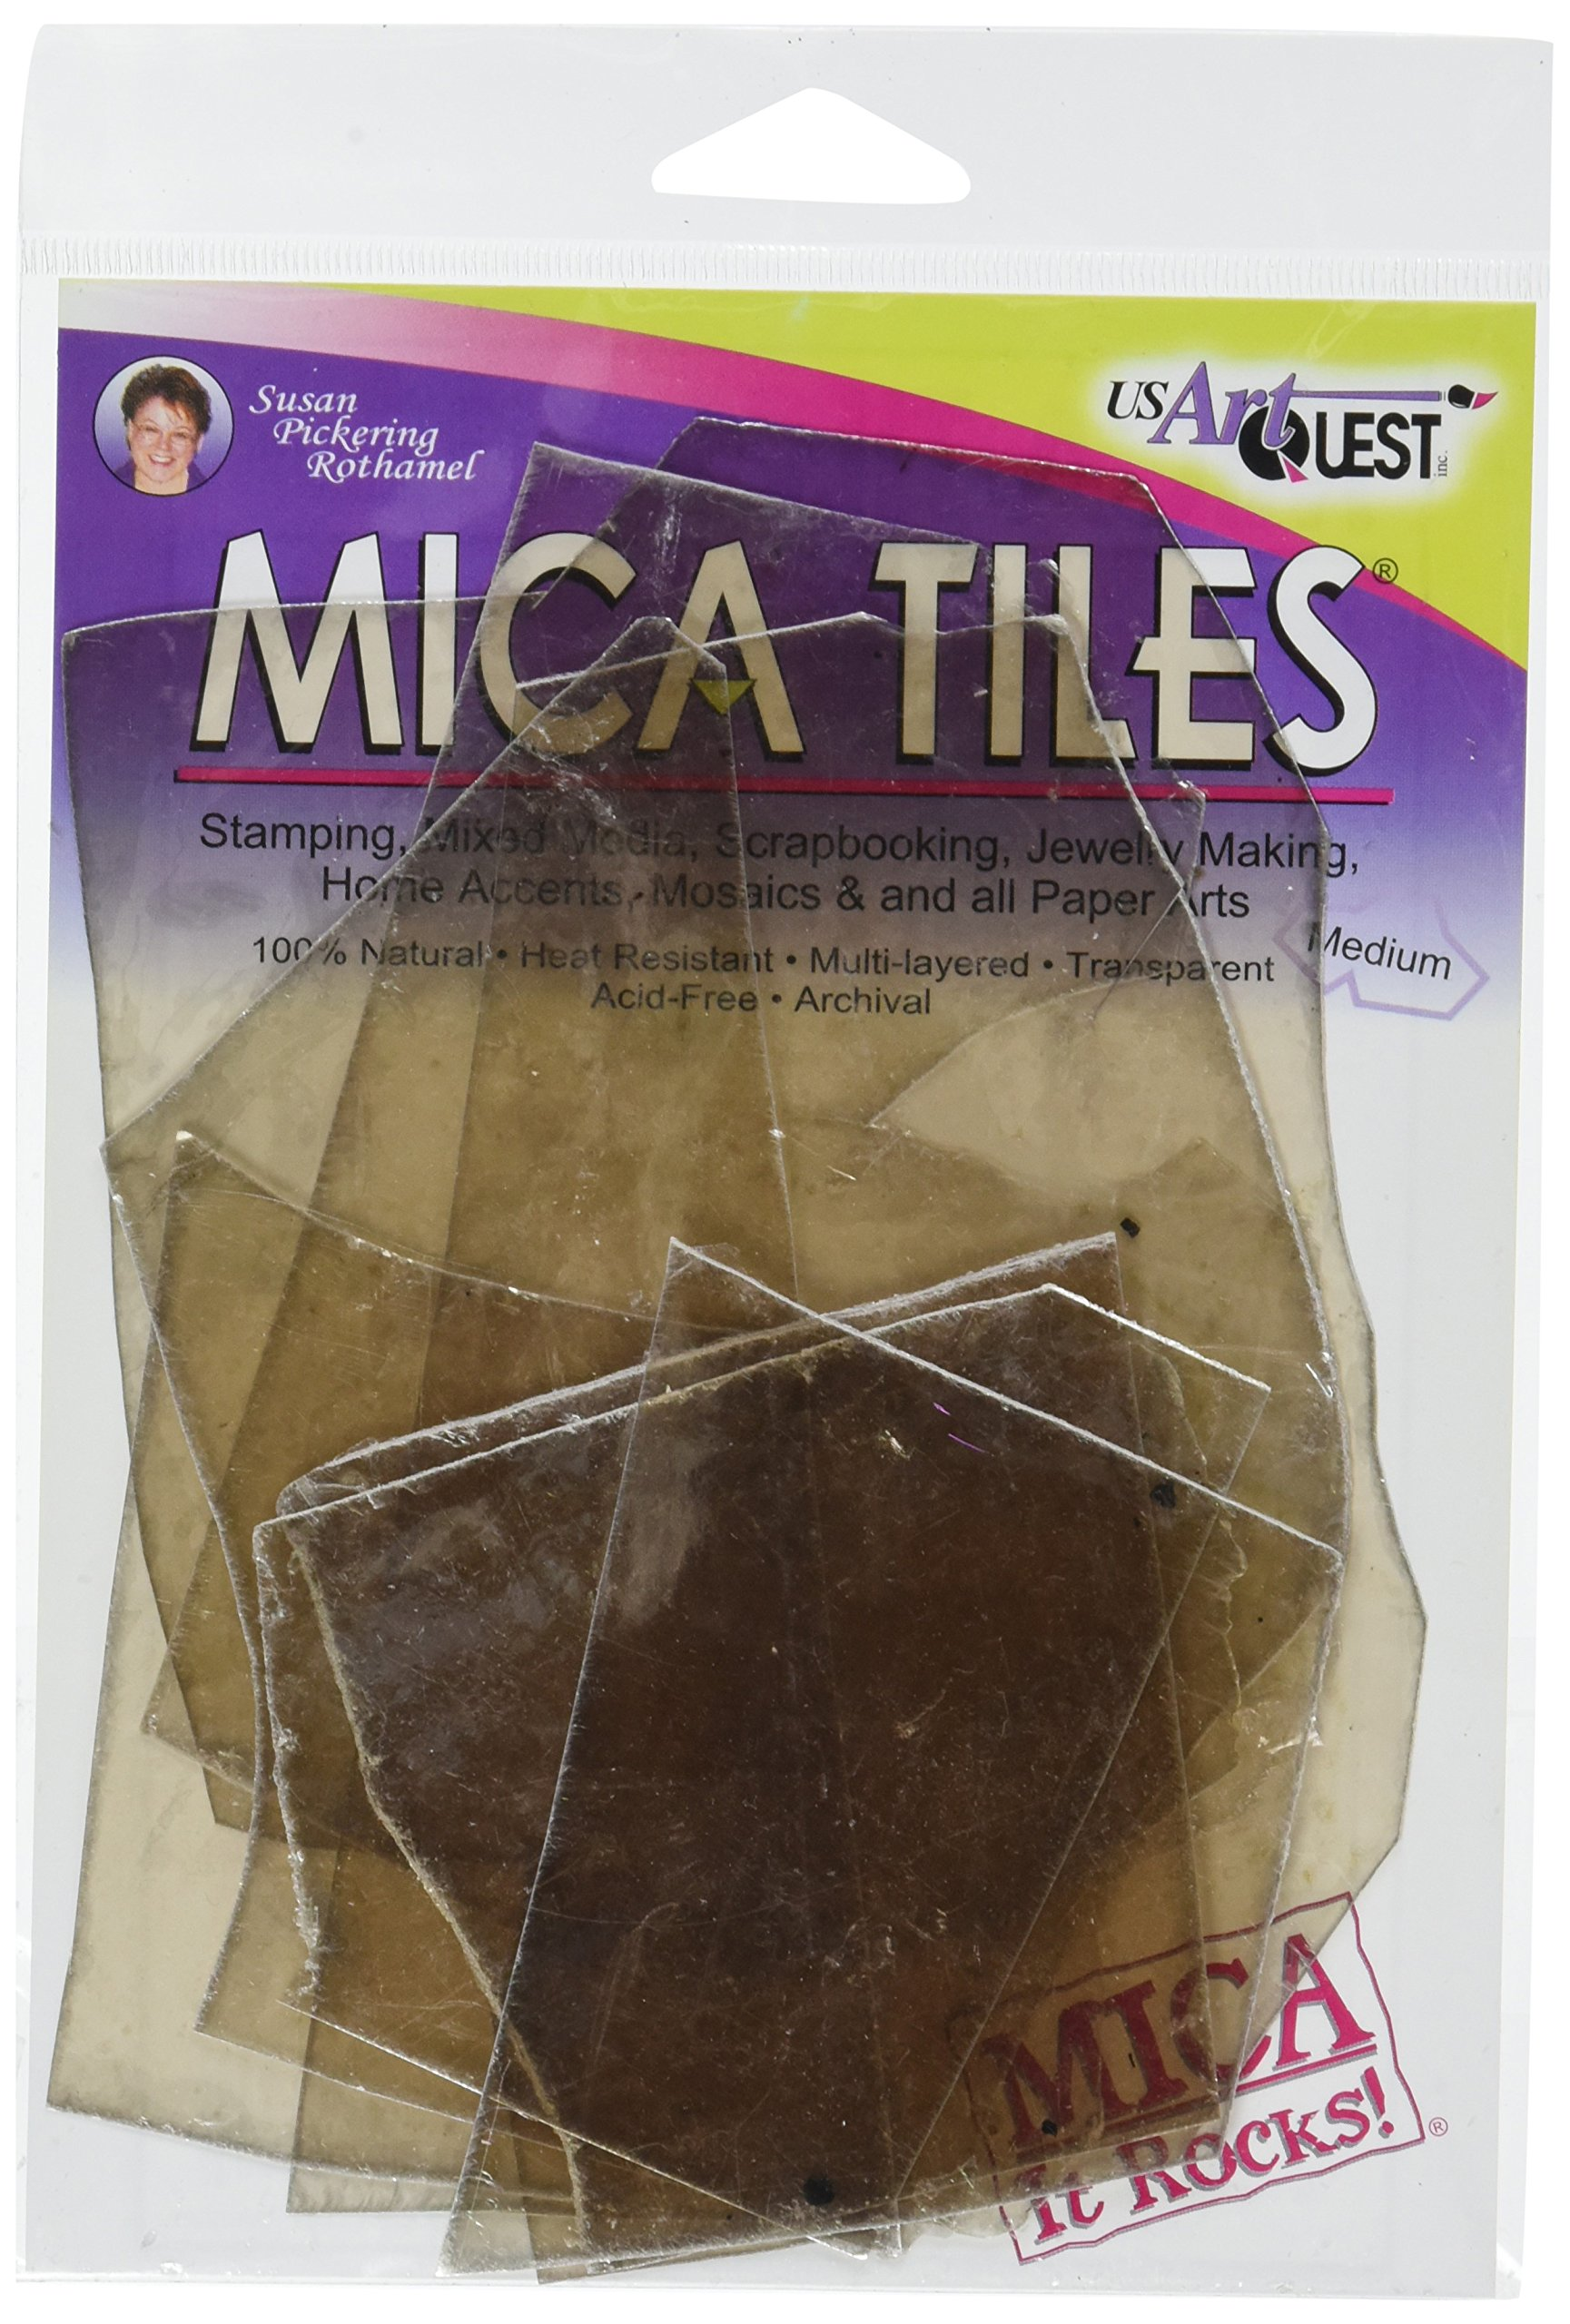 US Artquest Mica Tile Medium Pieces 1-Ounce, Approx 5-Inch by 6-Inch